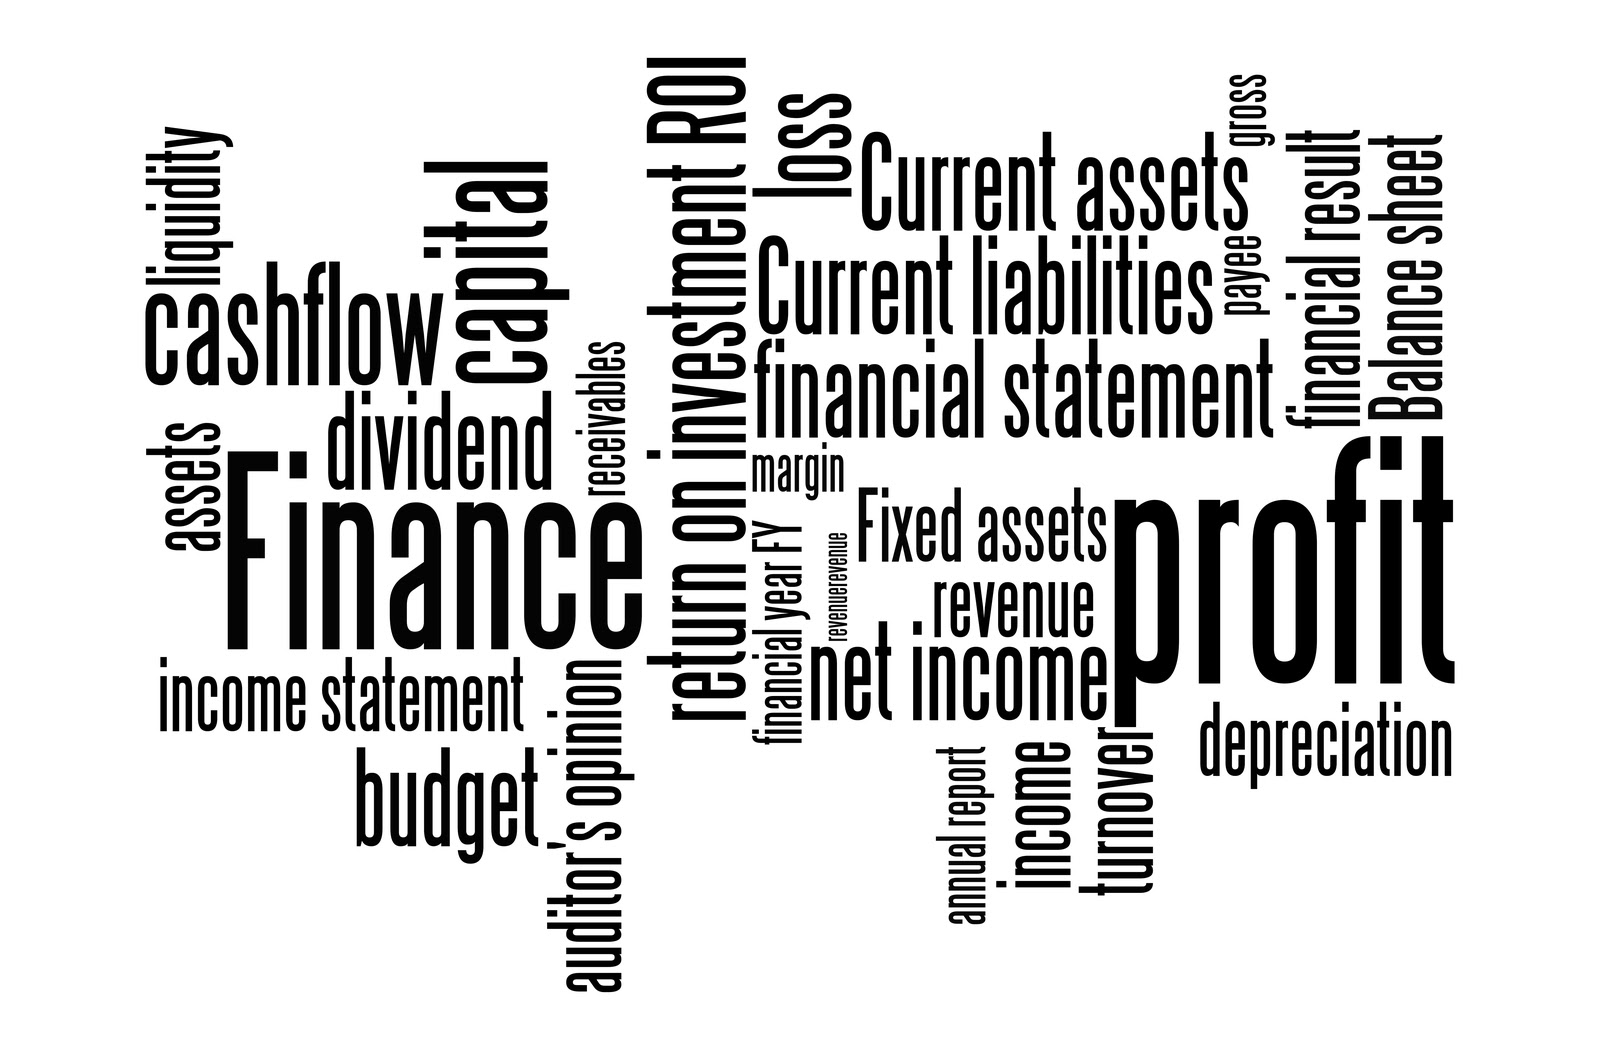 Word cloud illustration of different financial terms